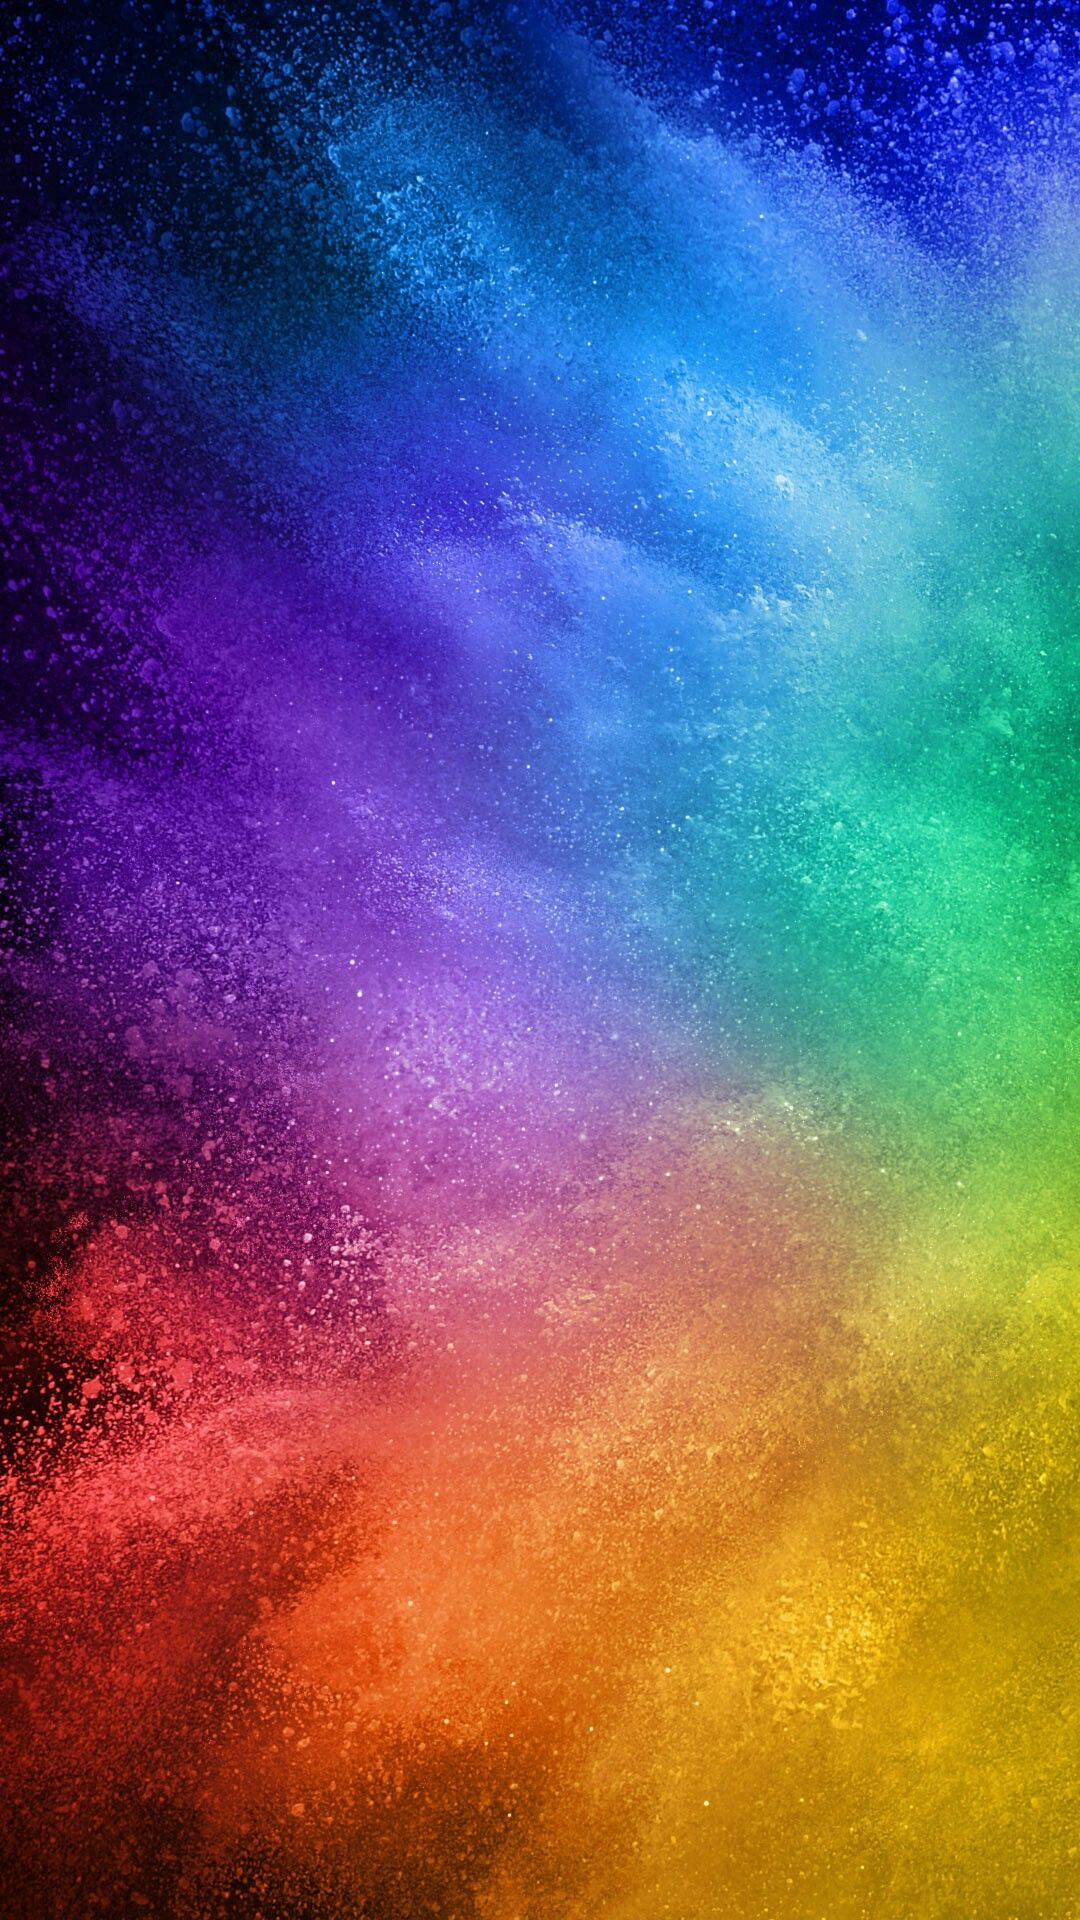 Rainbow wallpaper image by Brittany Graham on Cool